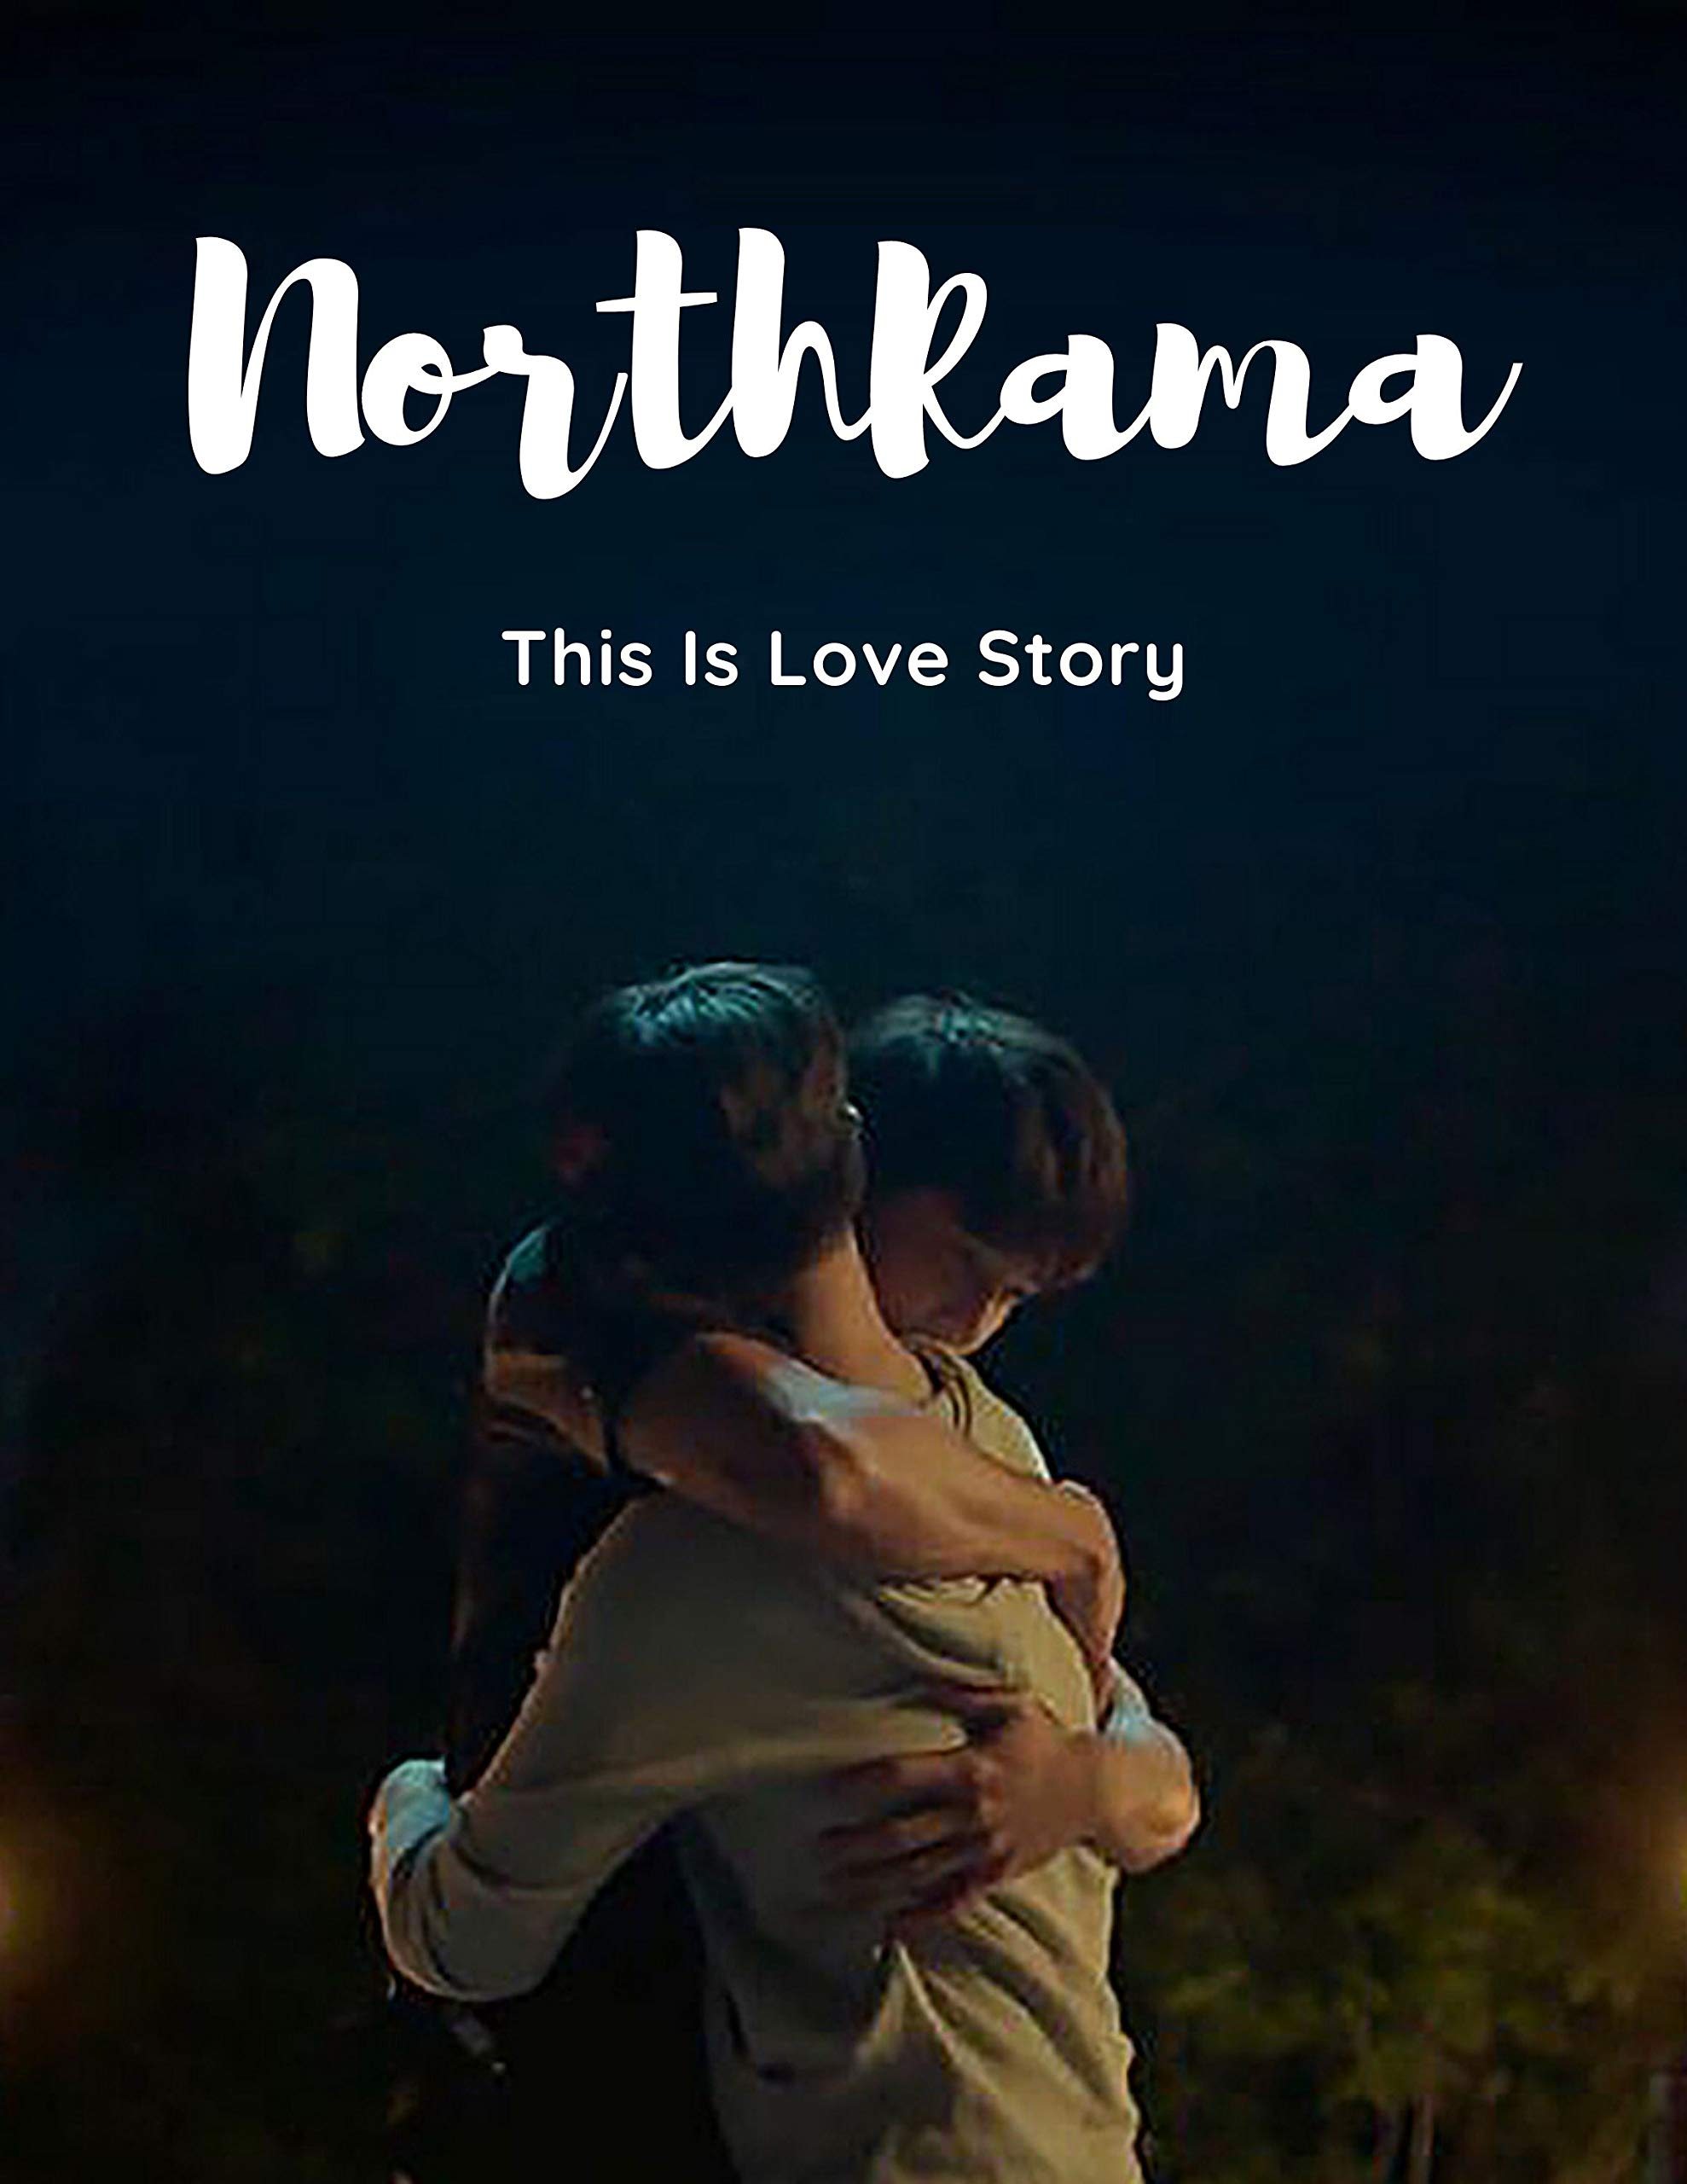 NORTHRAMA, YAOI Thai BL Story of Romance Novels Lover: 27 Chapter of YAOI Thai BL Story of Romance Novels Lover, Gay Lgbt Romantic Comedy books kindle Ebook & Paperback Notebook